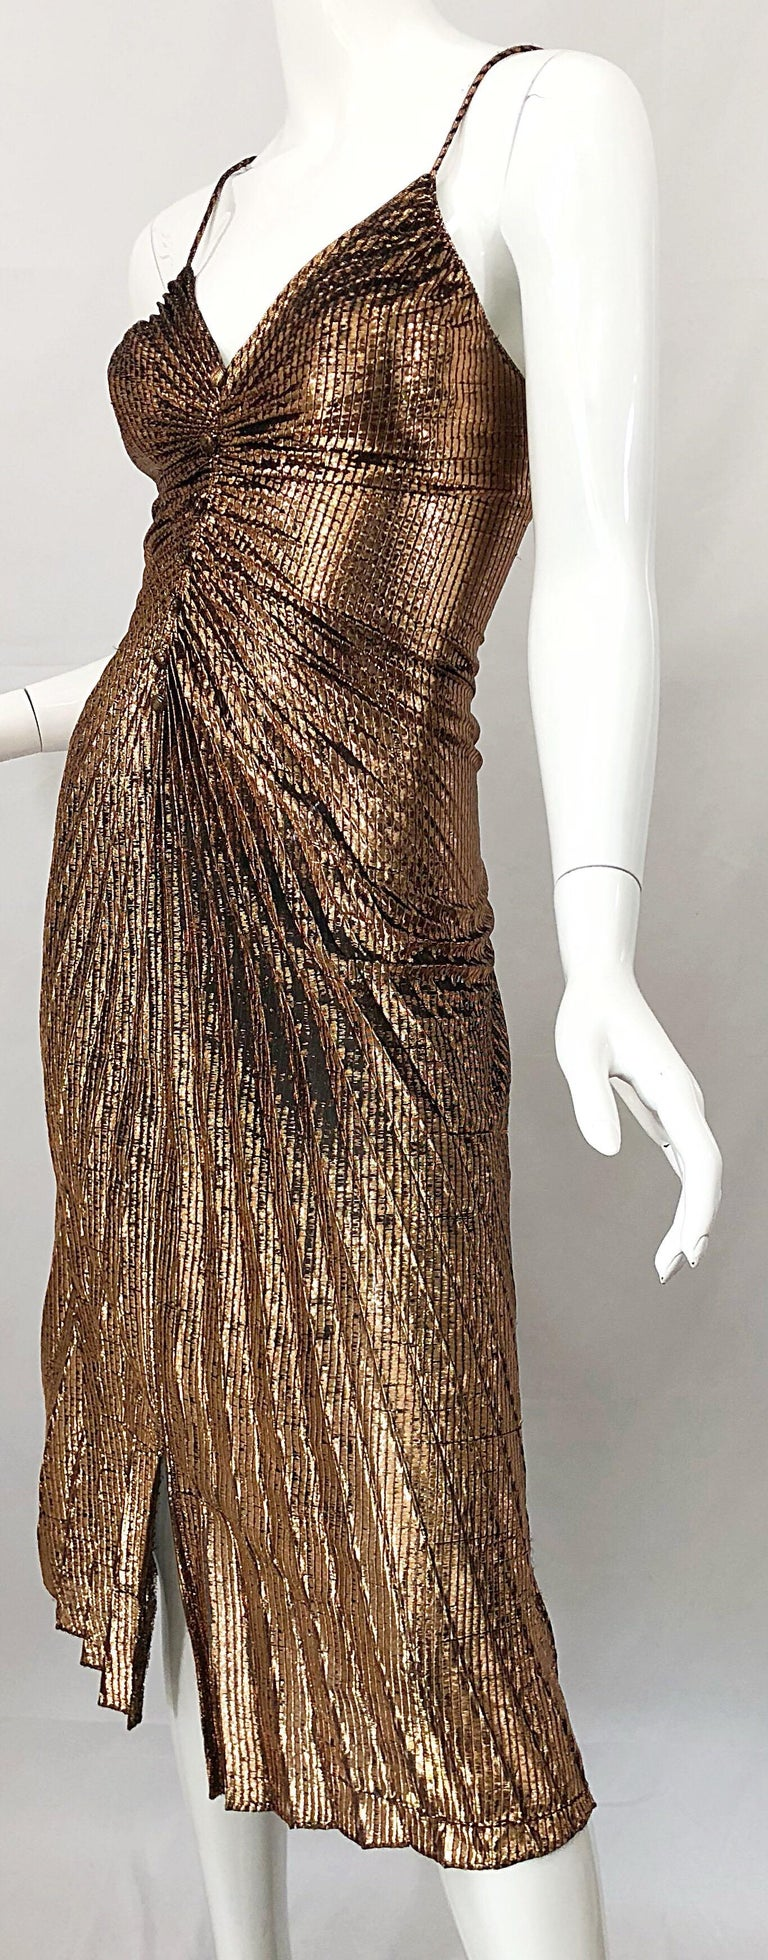 1970s Samir Sexy Golden Bronze Pleated Disco Studio 54 Slinky Vintage 70s Dress In Excellent Condition For Sale In Chicago, IL